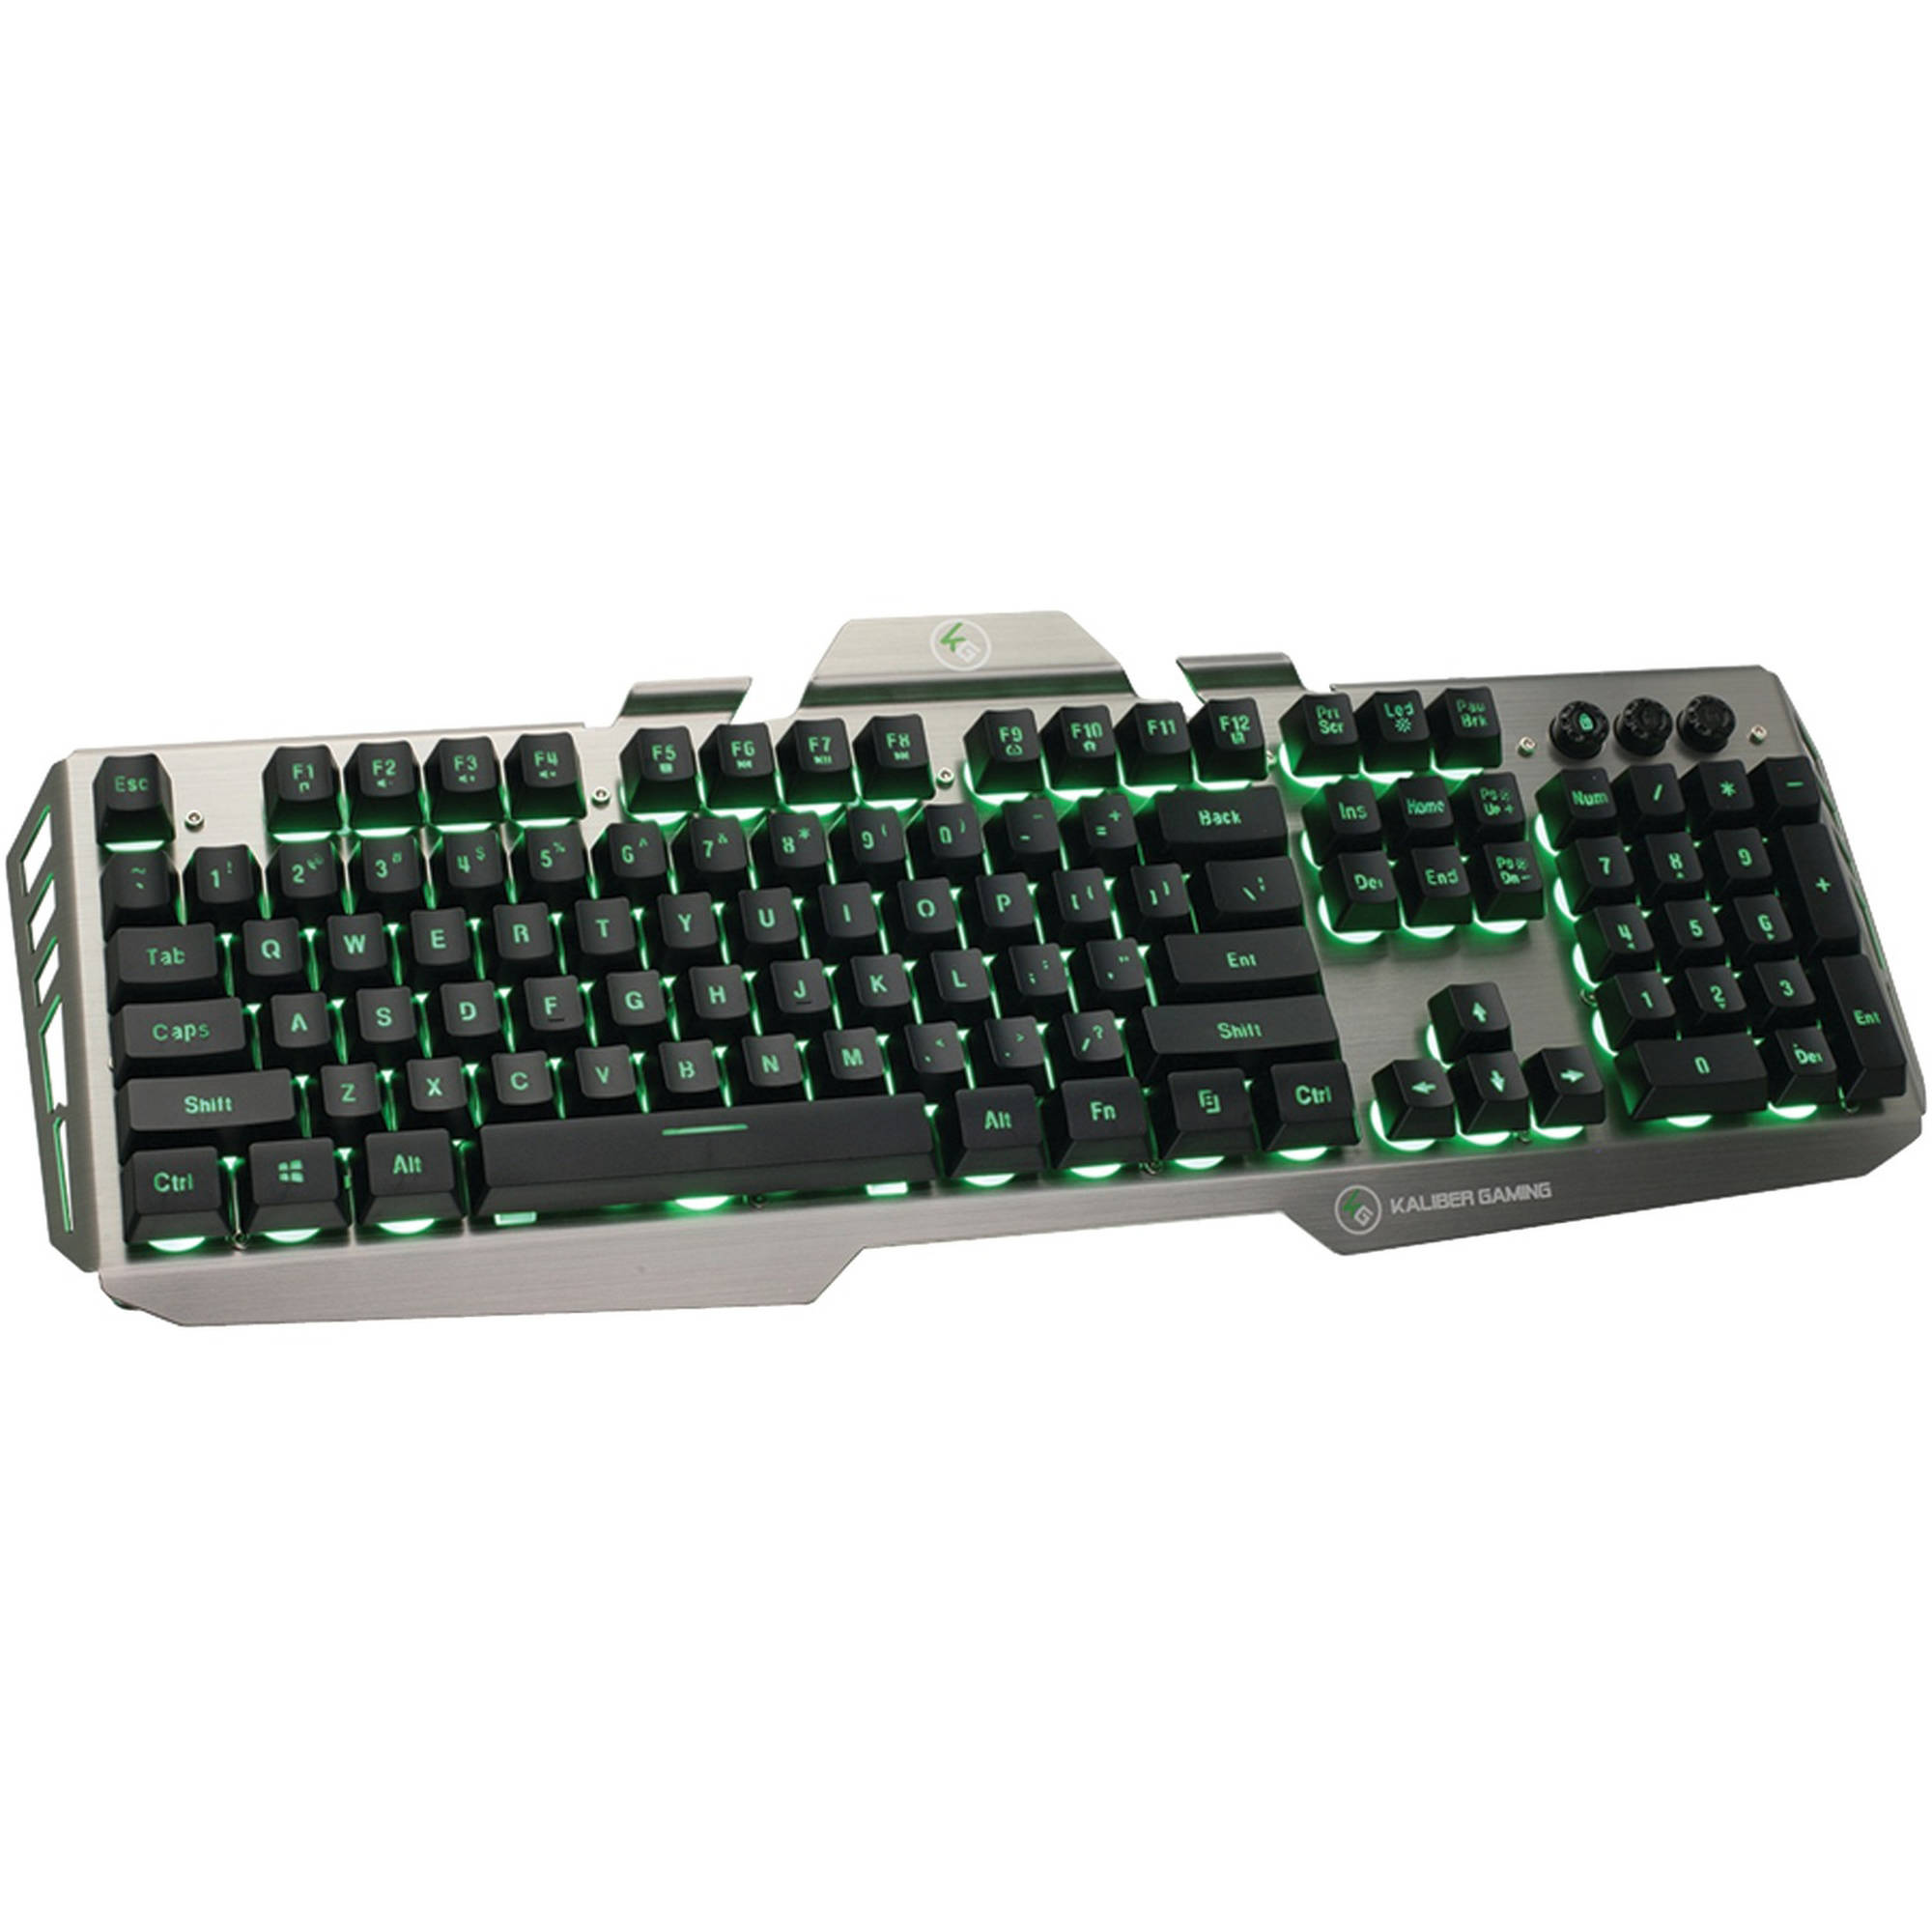 IOGear Kaliber Gaming HVER Aluminum Gaming Keyboard, Black/Gray